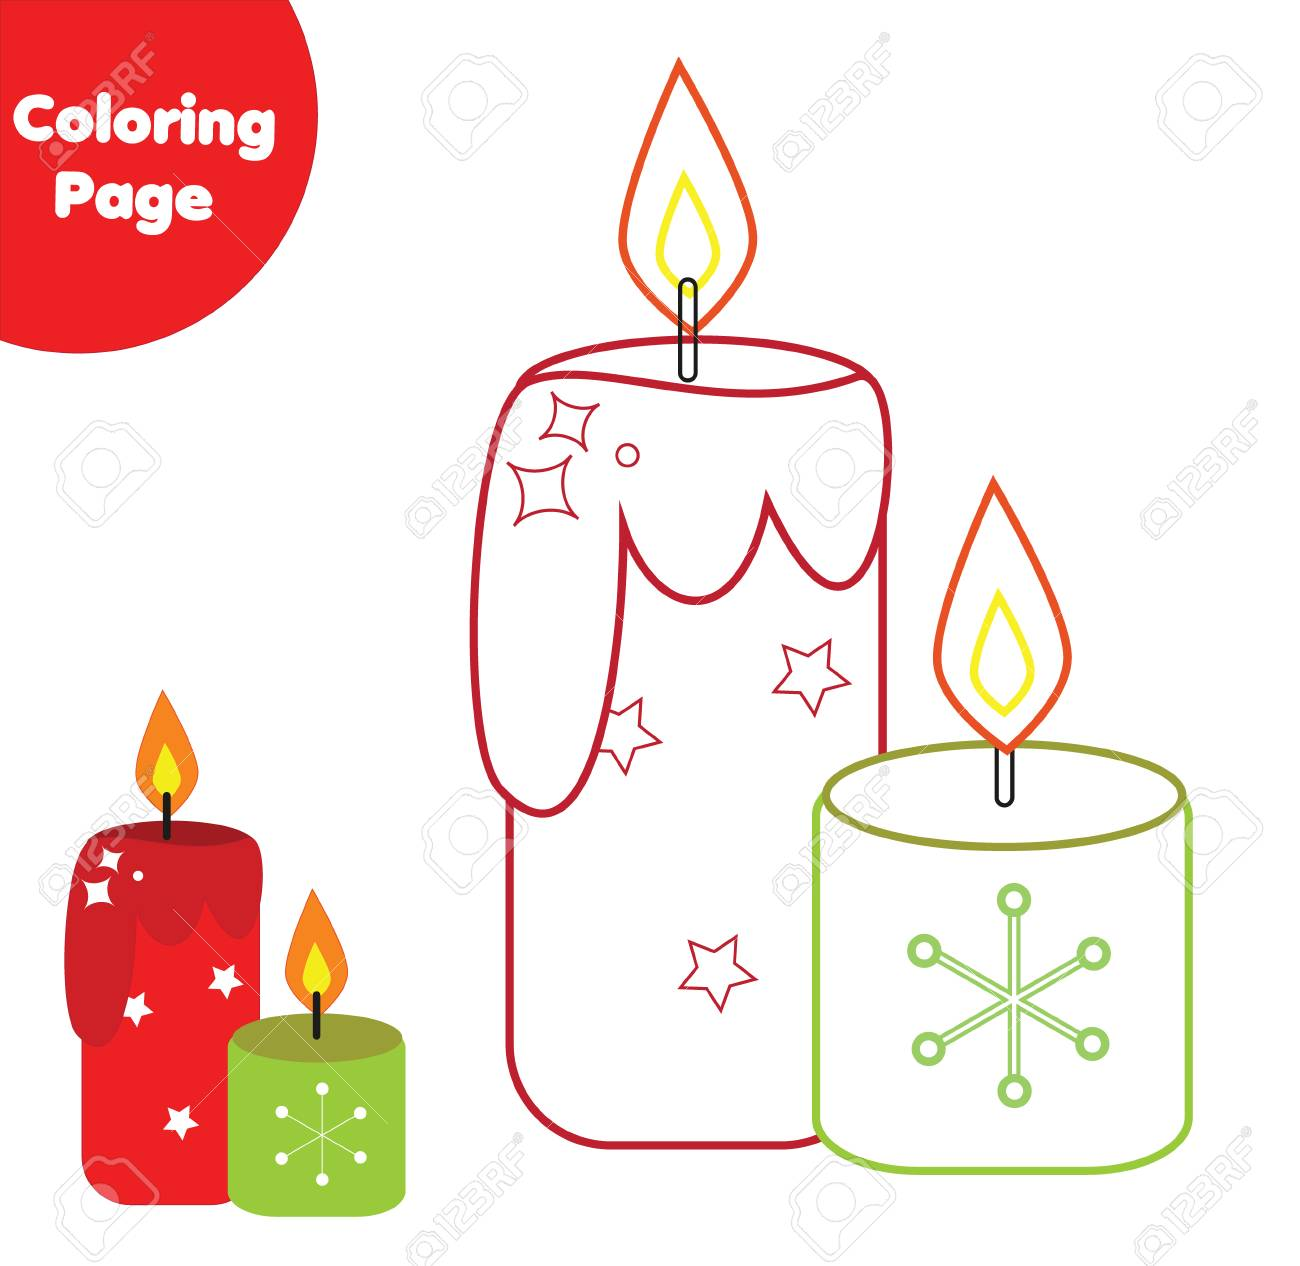 image regarding Printable Candles called Coloring webpage. Enlightening activity for youngsters. Coloration candles